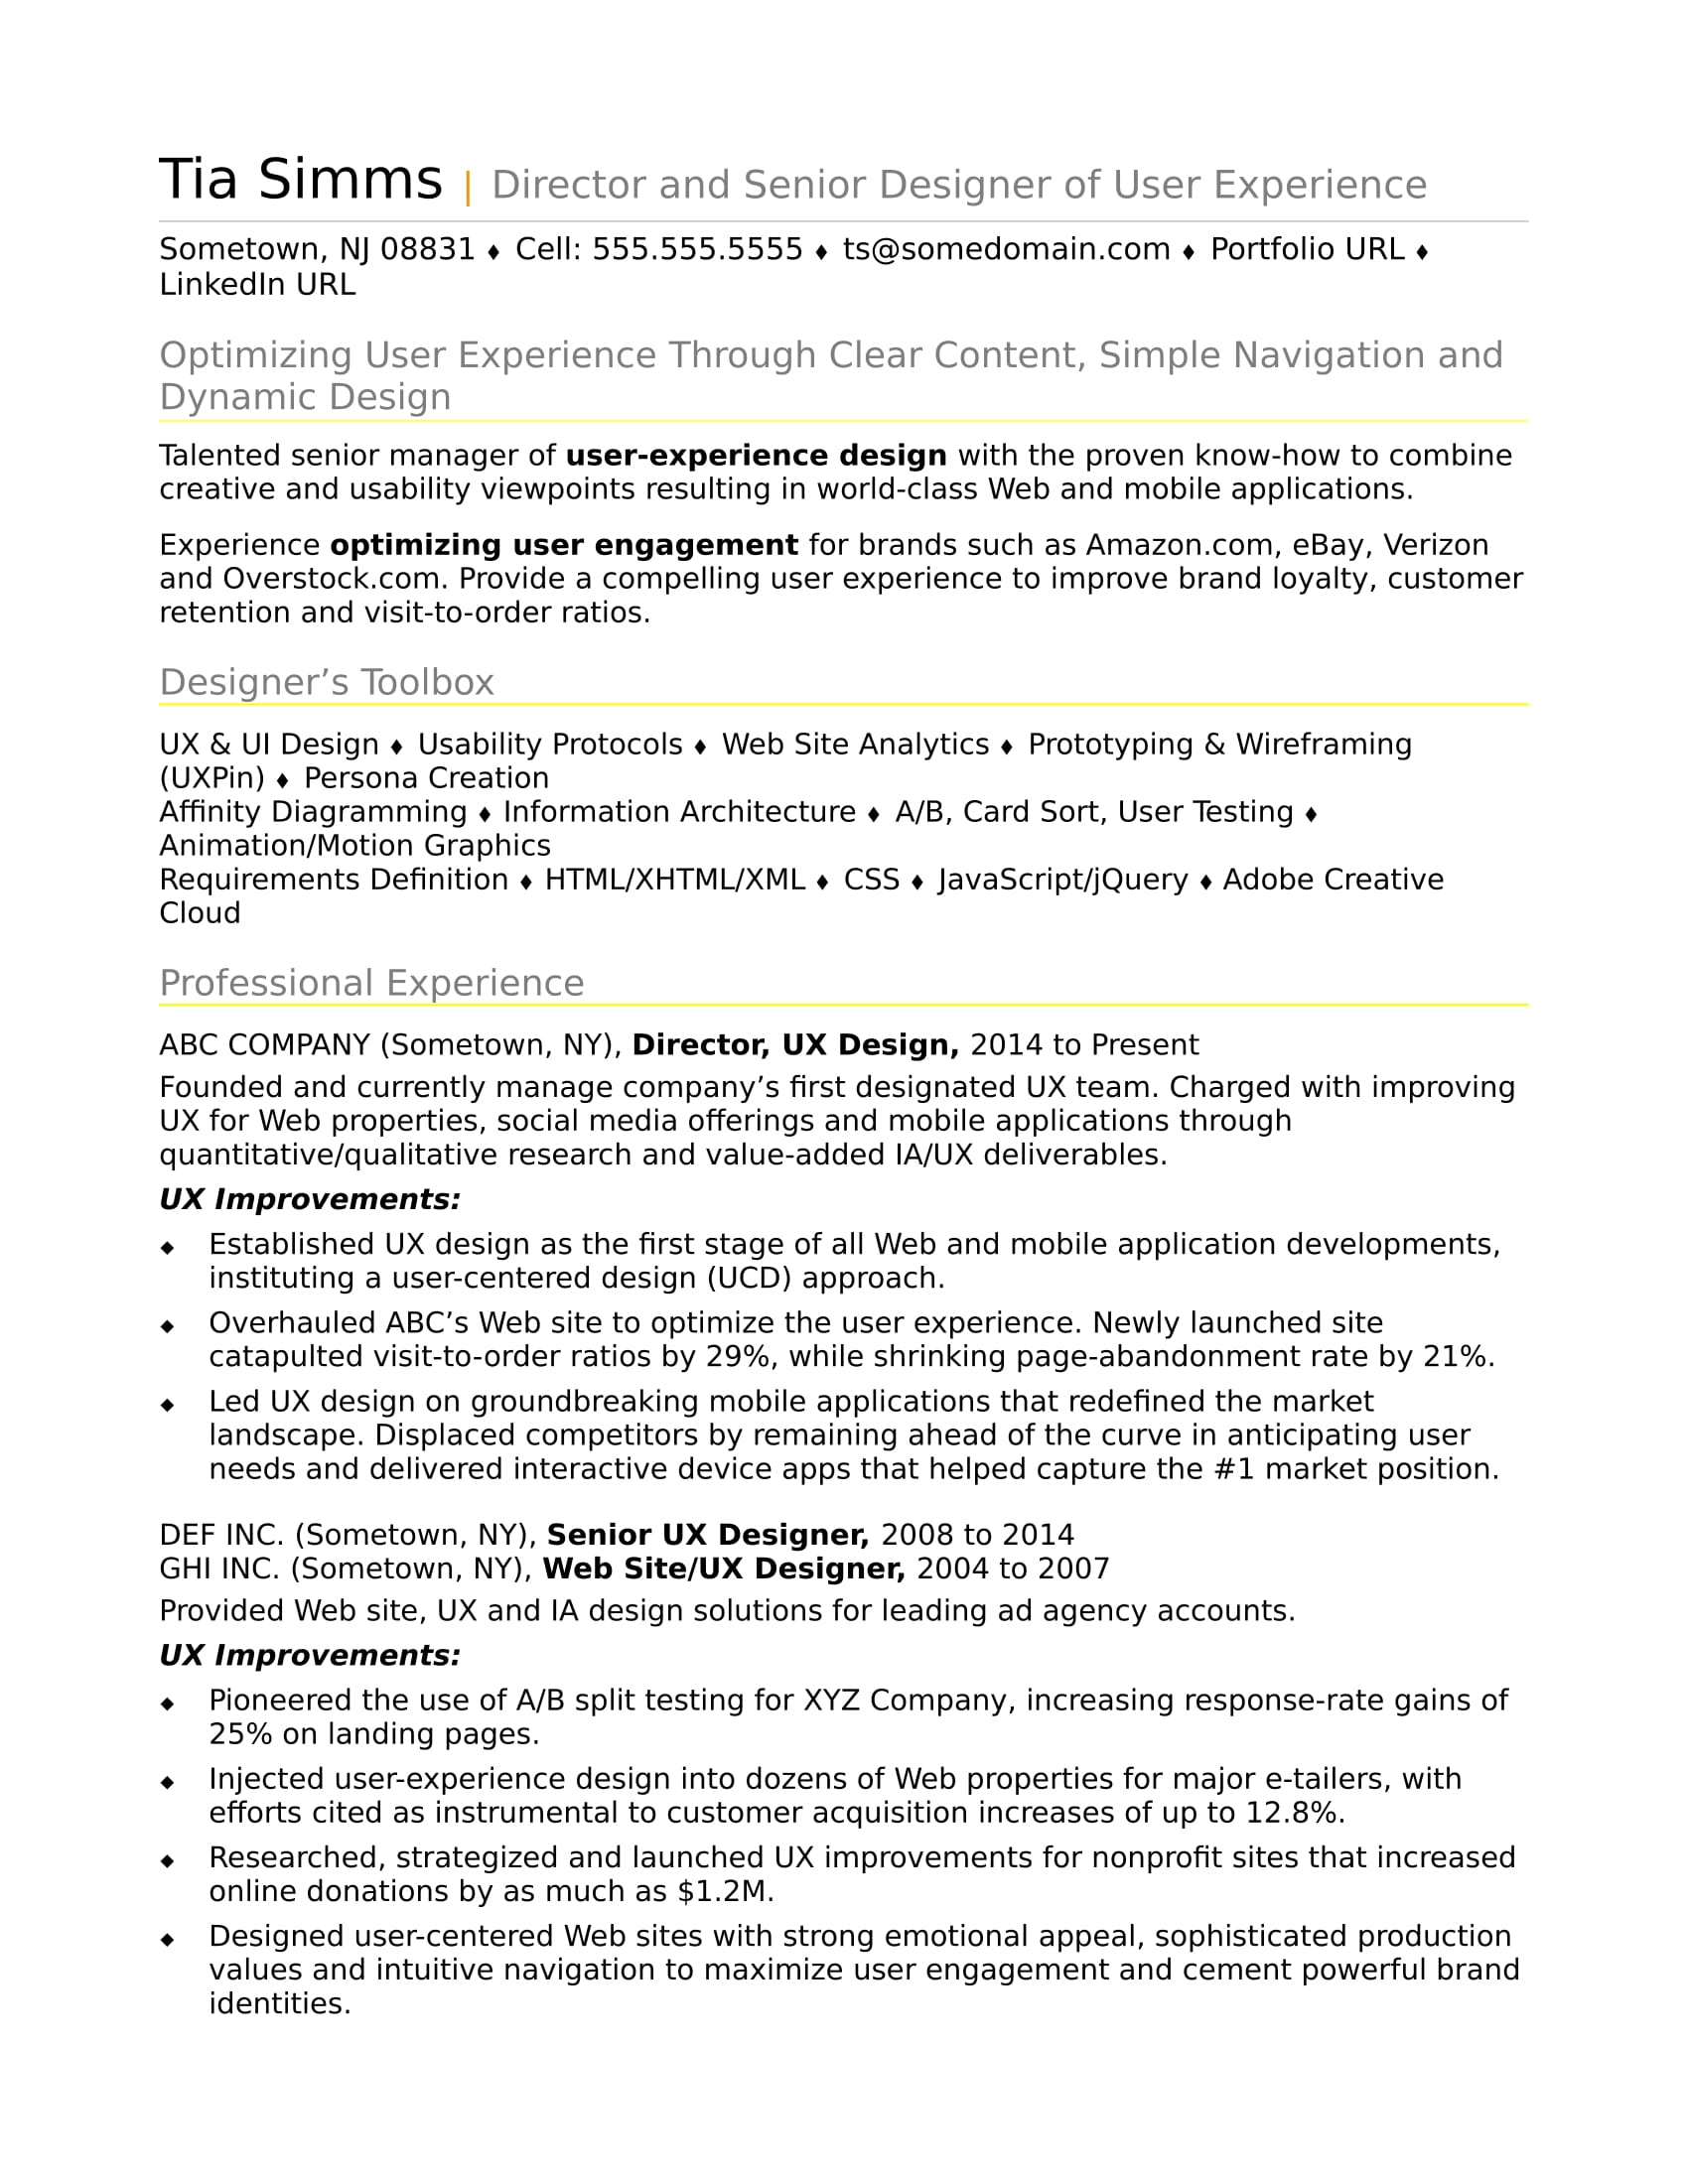 Captivating Sample Resume For An Experienced UX Designer Inside User Experience Designer Resume